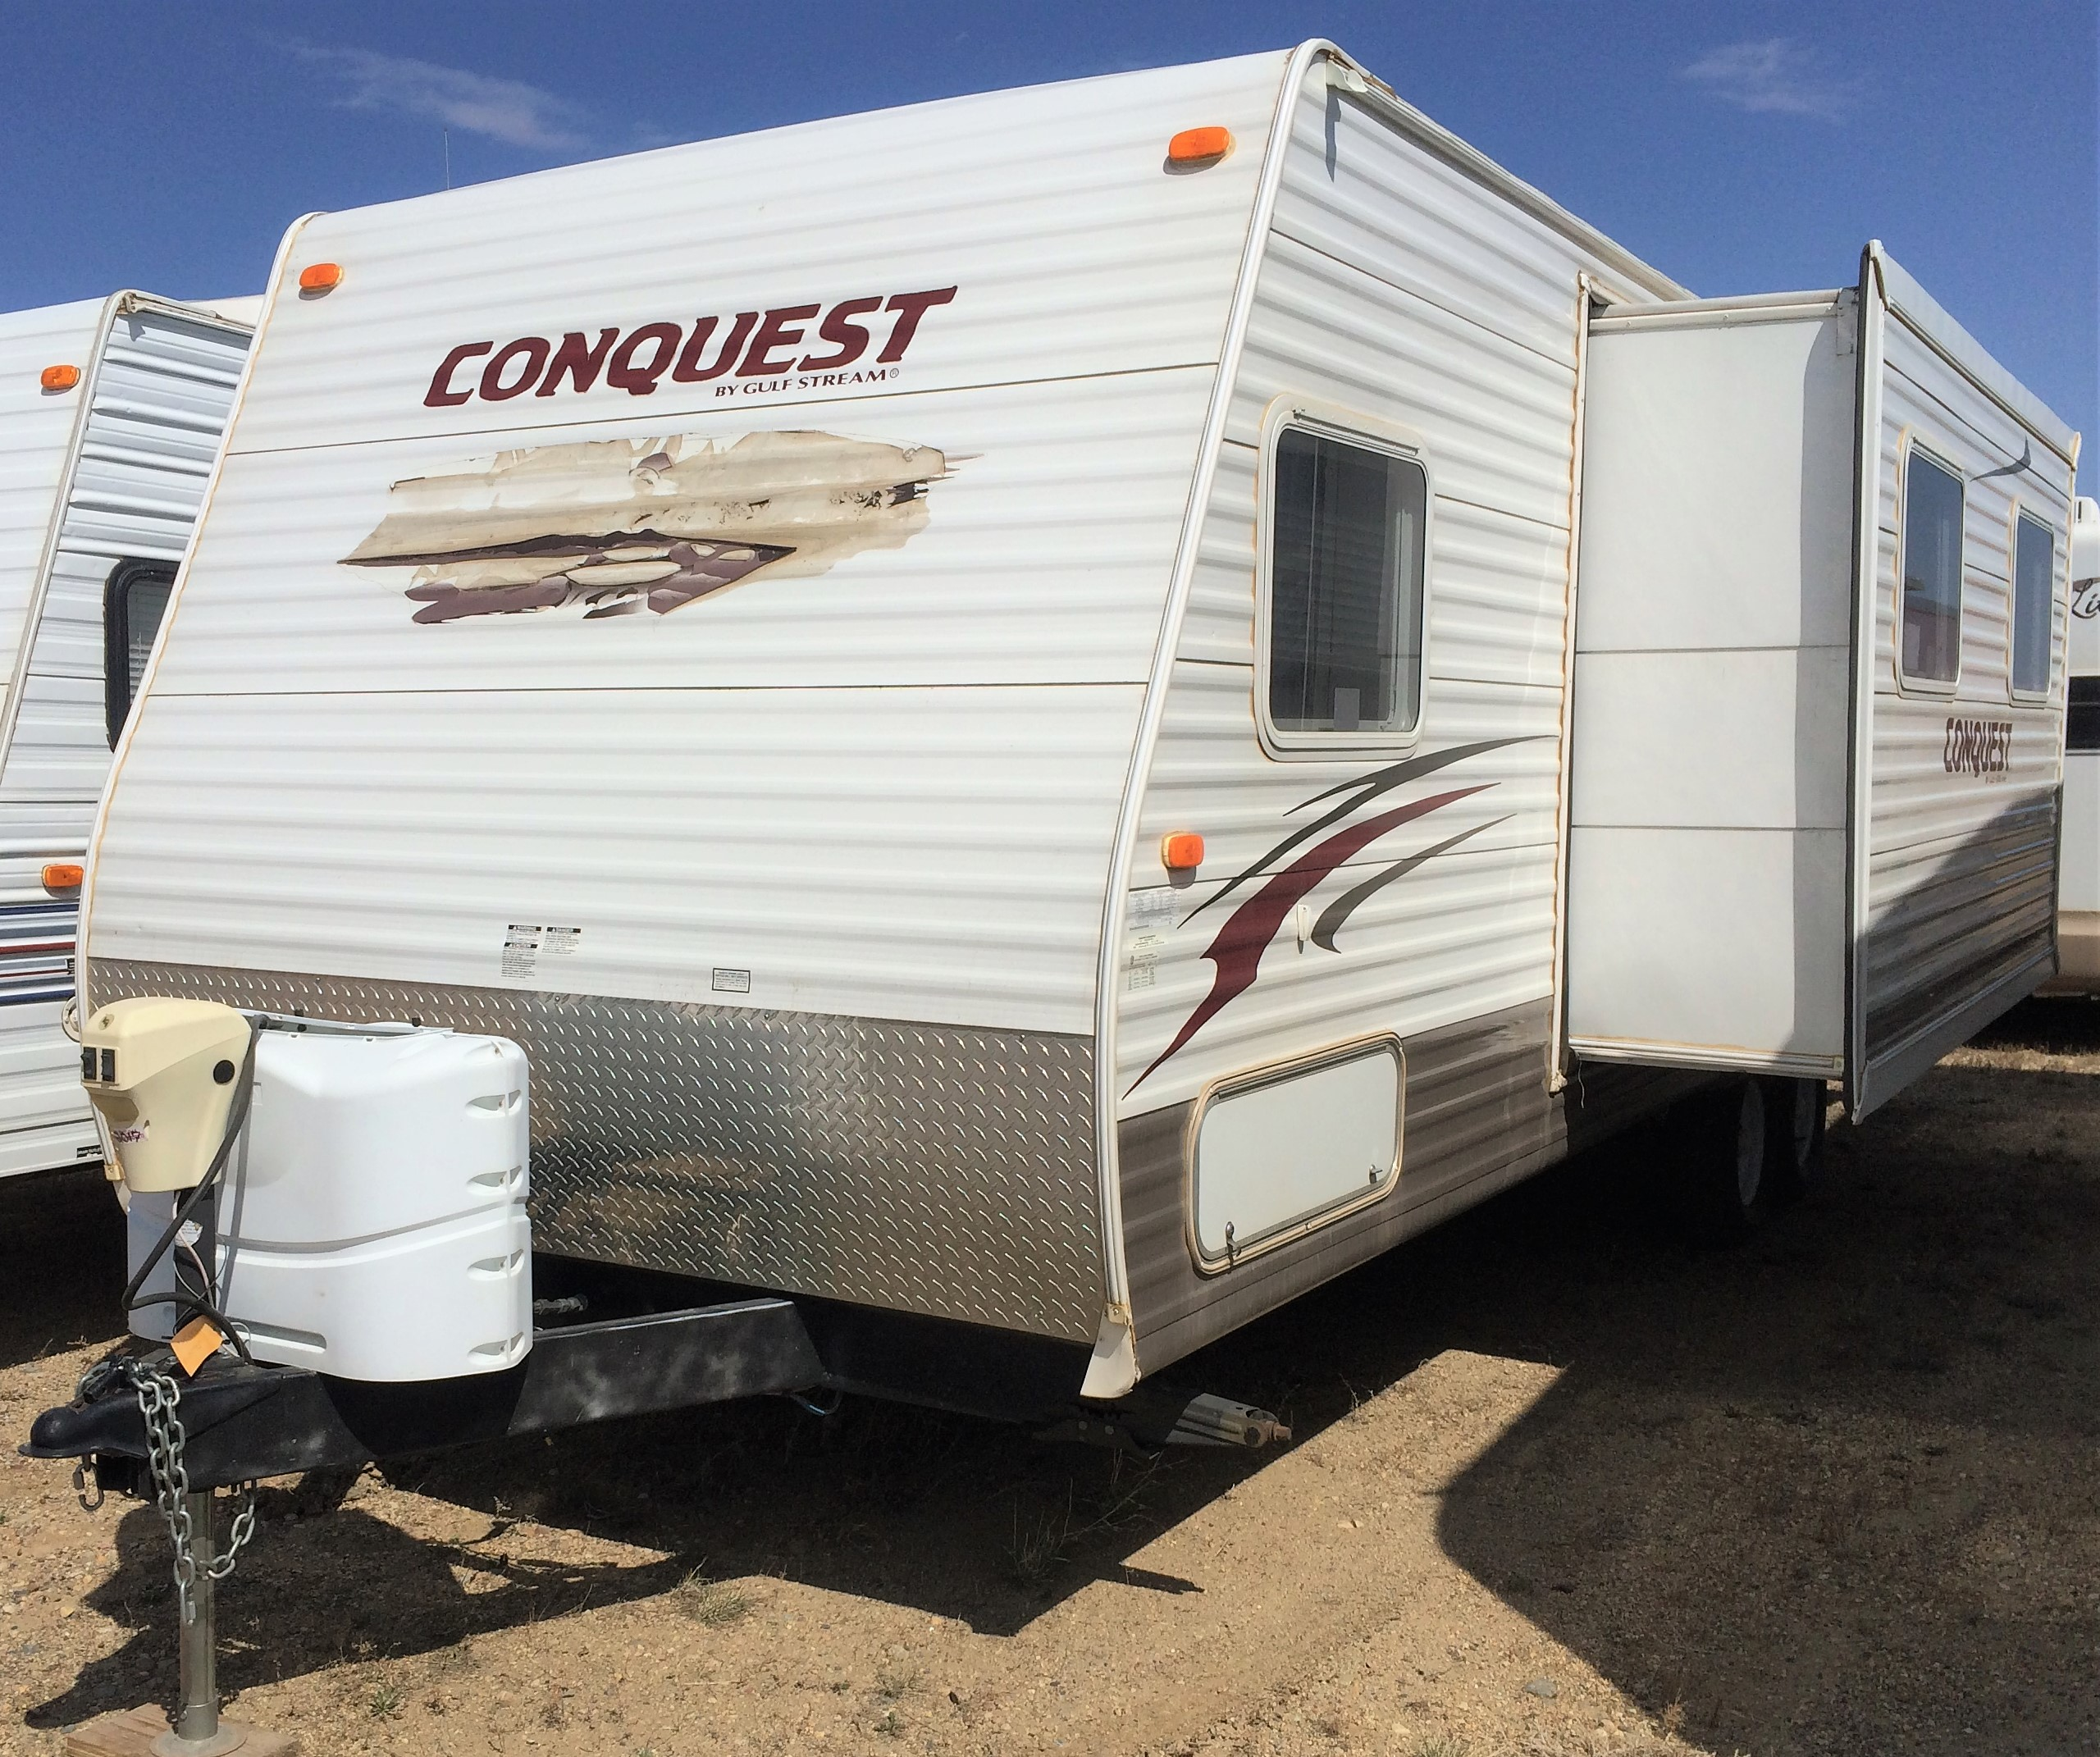 11tt2456 2011 Gulf Stream Conquest 255bh Price Was